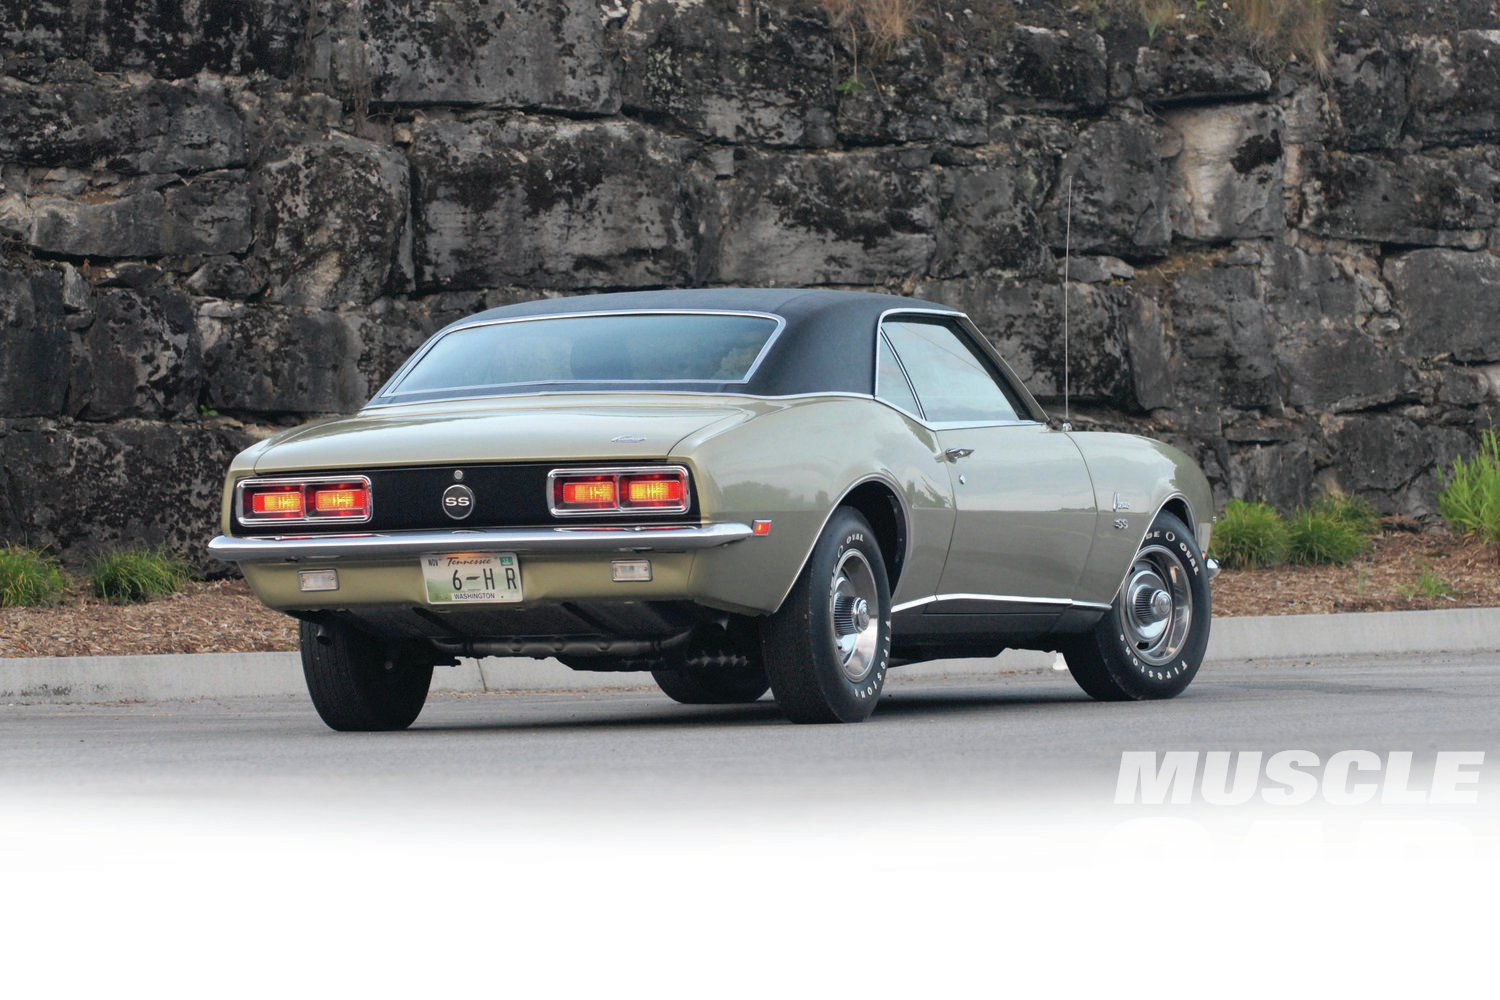 What started as a father/son bonding experience turned into a full-blown, nut-and-bolt resto of this '68 Camaro. The car was too rare, and too well documented, not to give it the full resto treatment, says Randall Matheson, who rebuilt the car with son Dave.